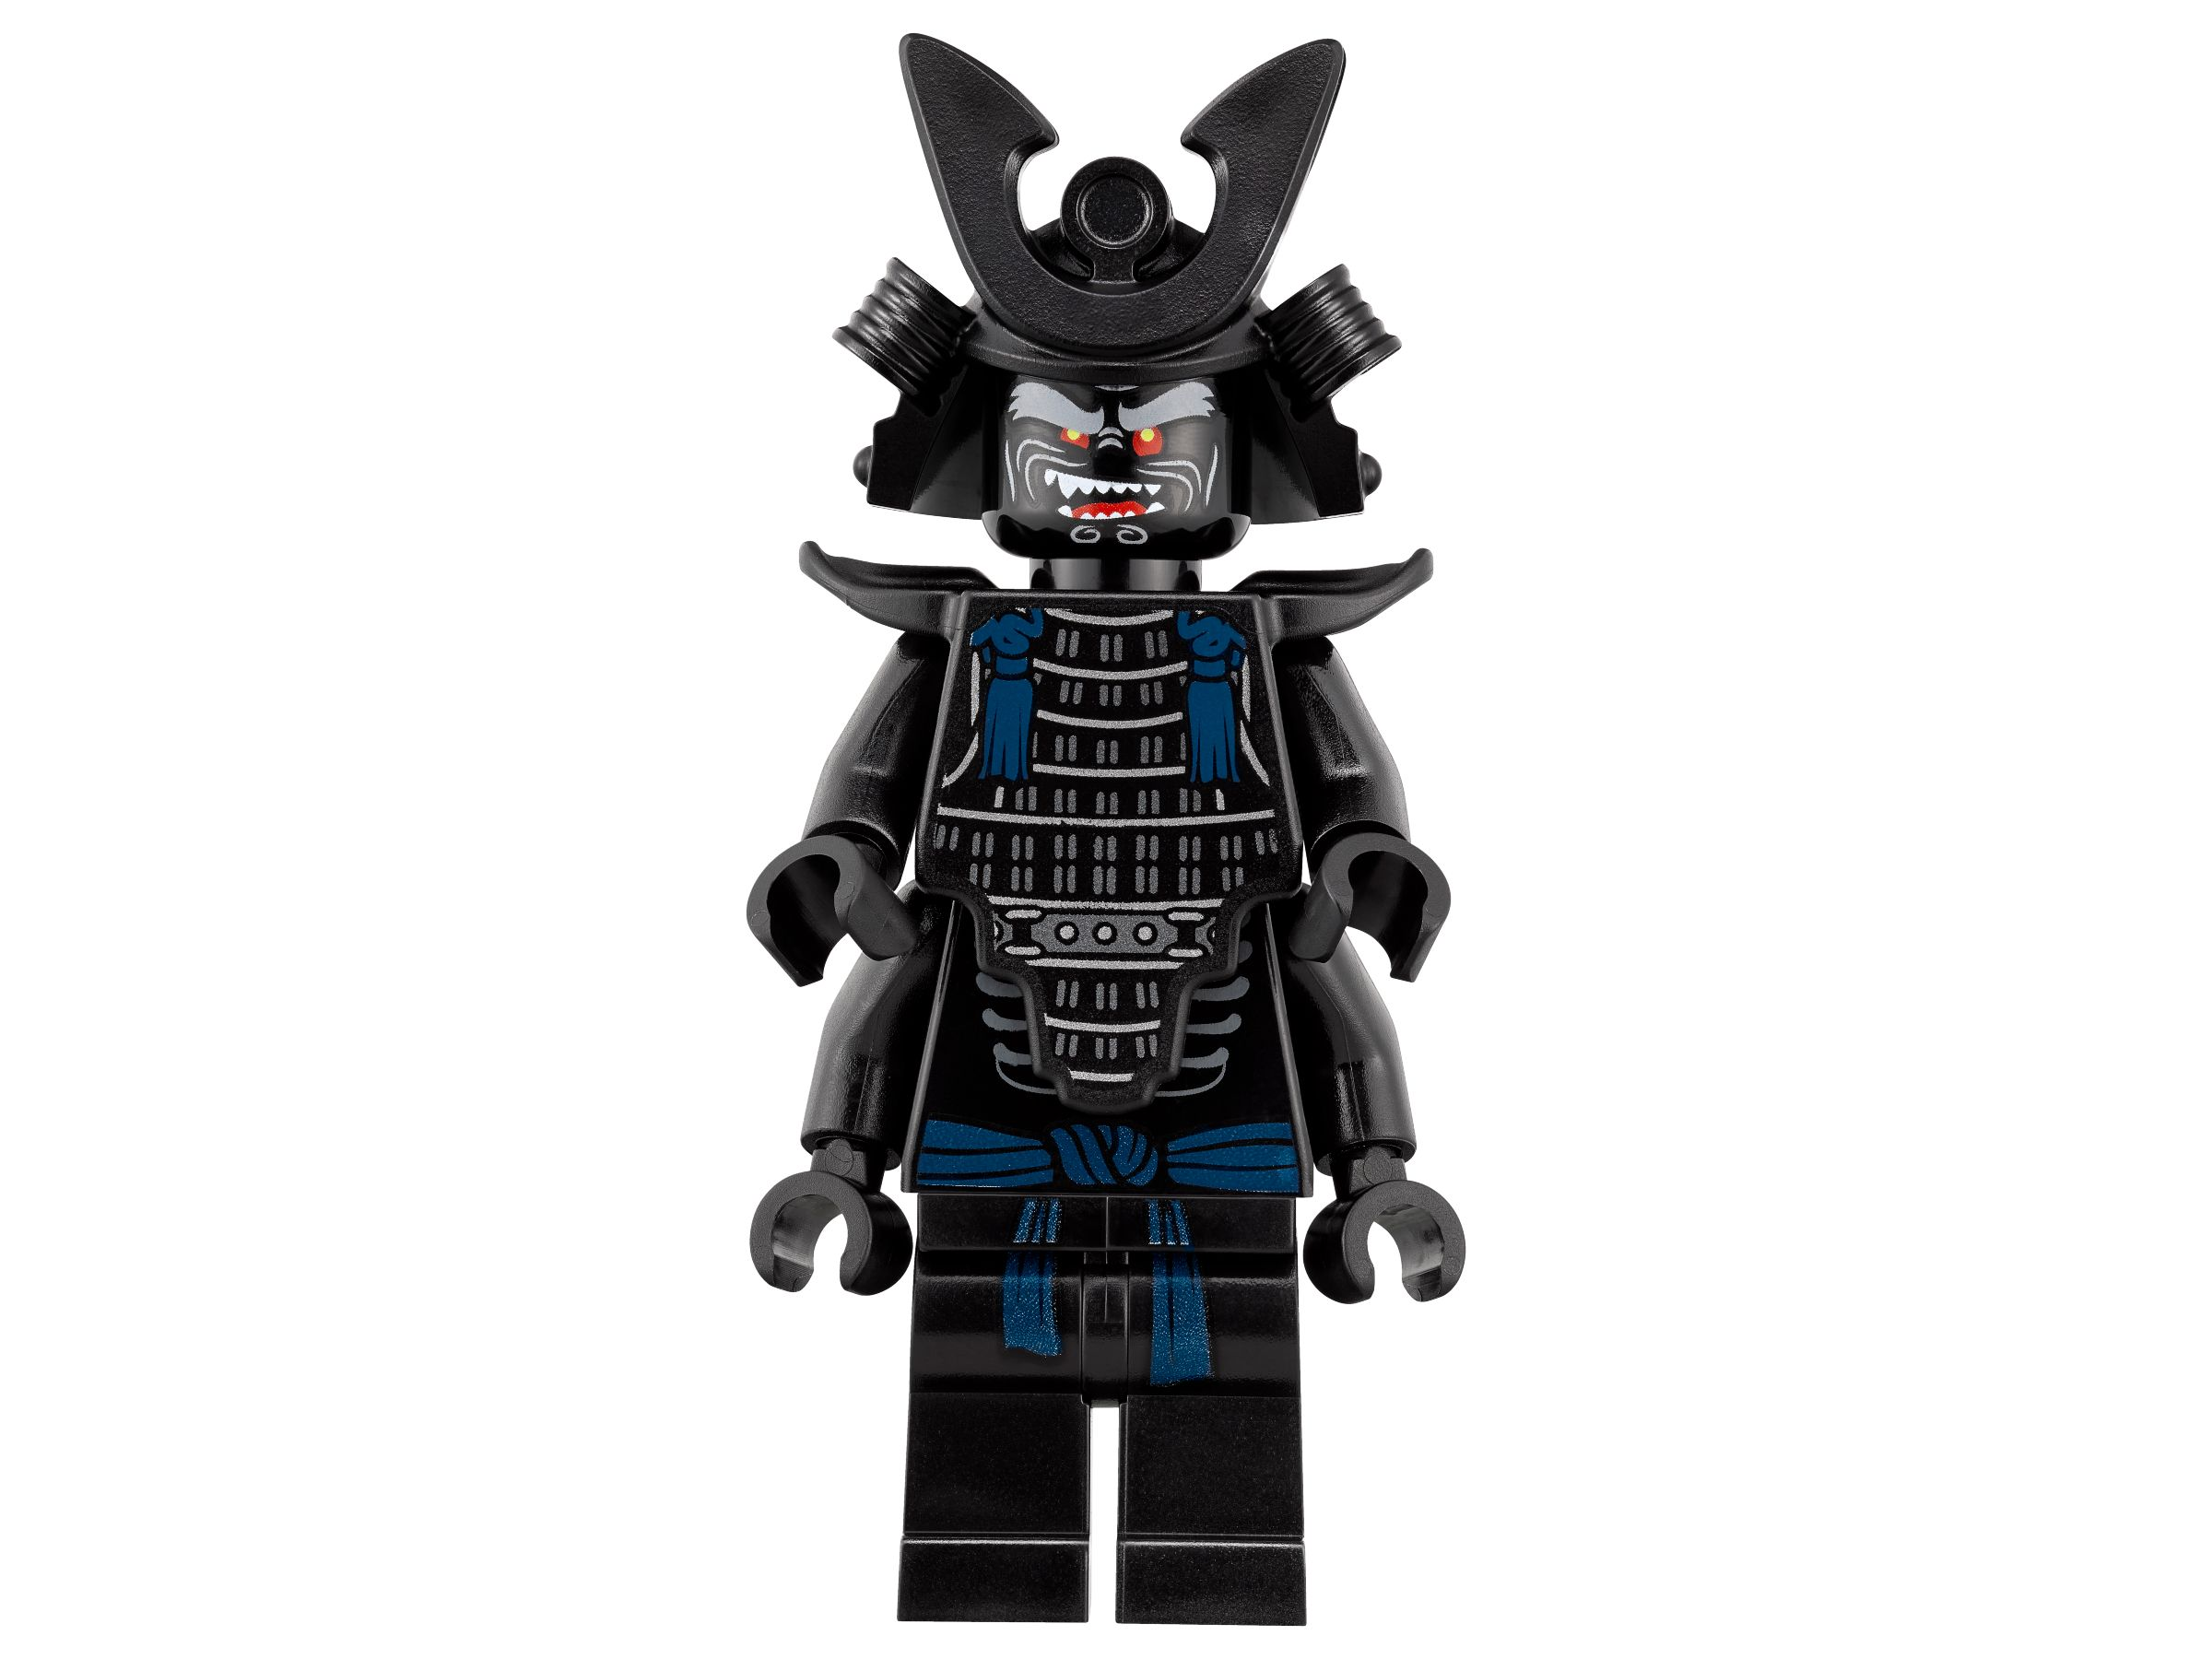 LEGO The LEGO Ninjago Movie 70613 Garmadon's Robo-Hai LEGO_70613_alt11.jpg